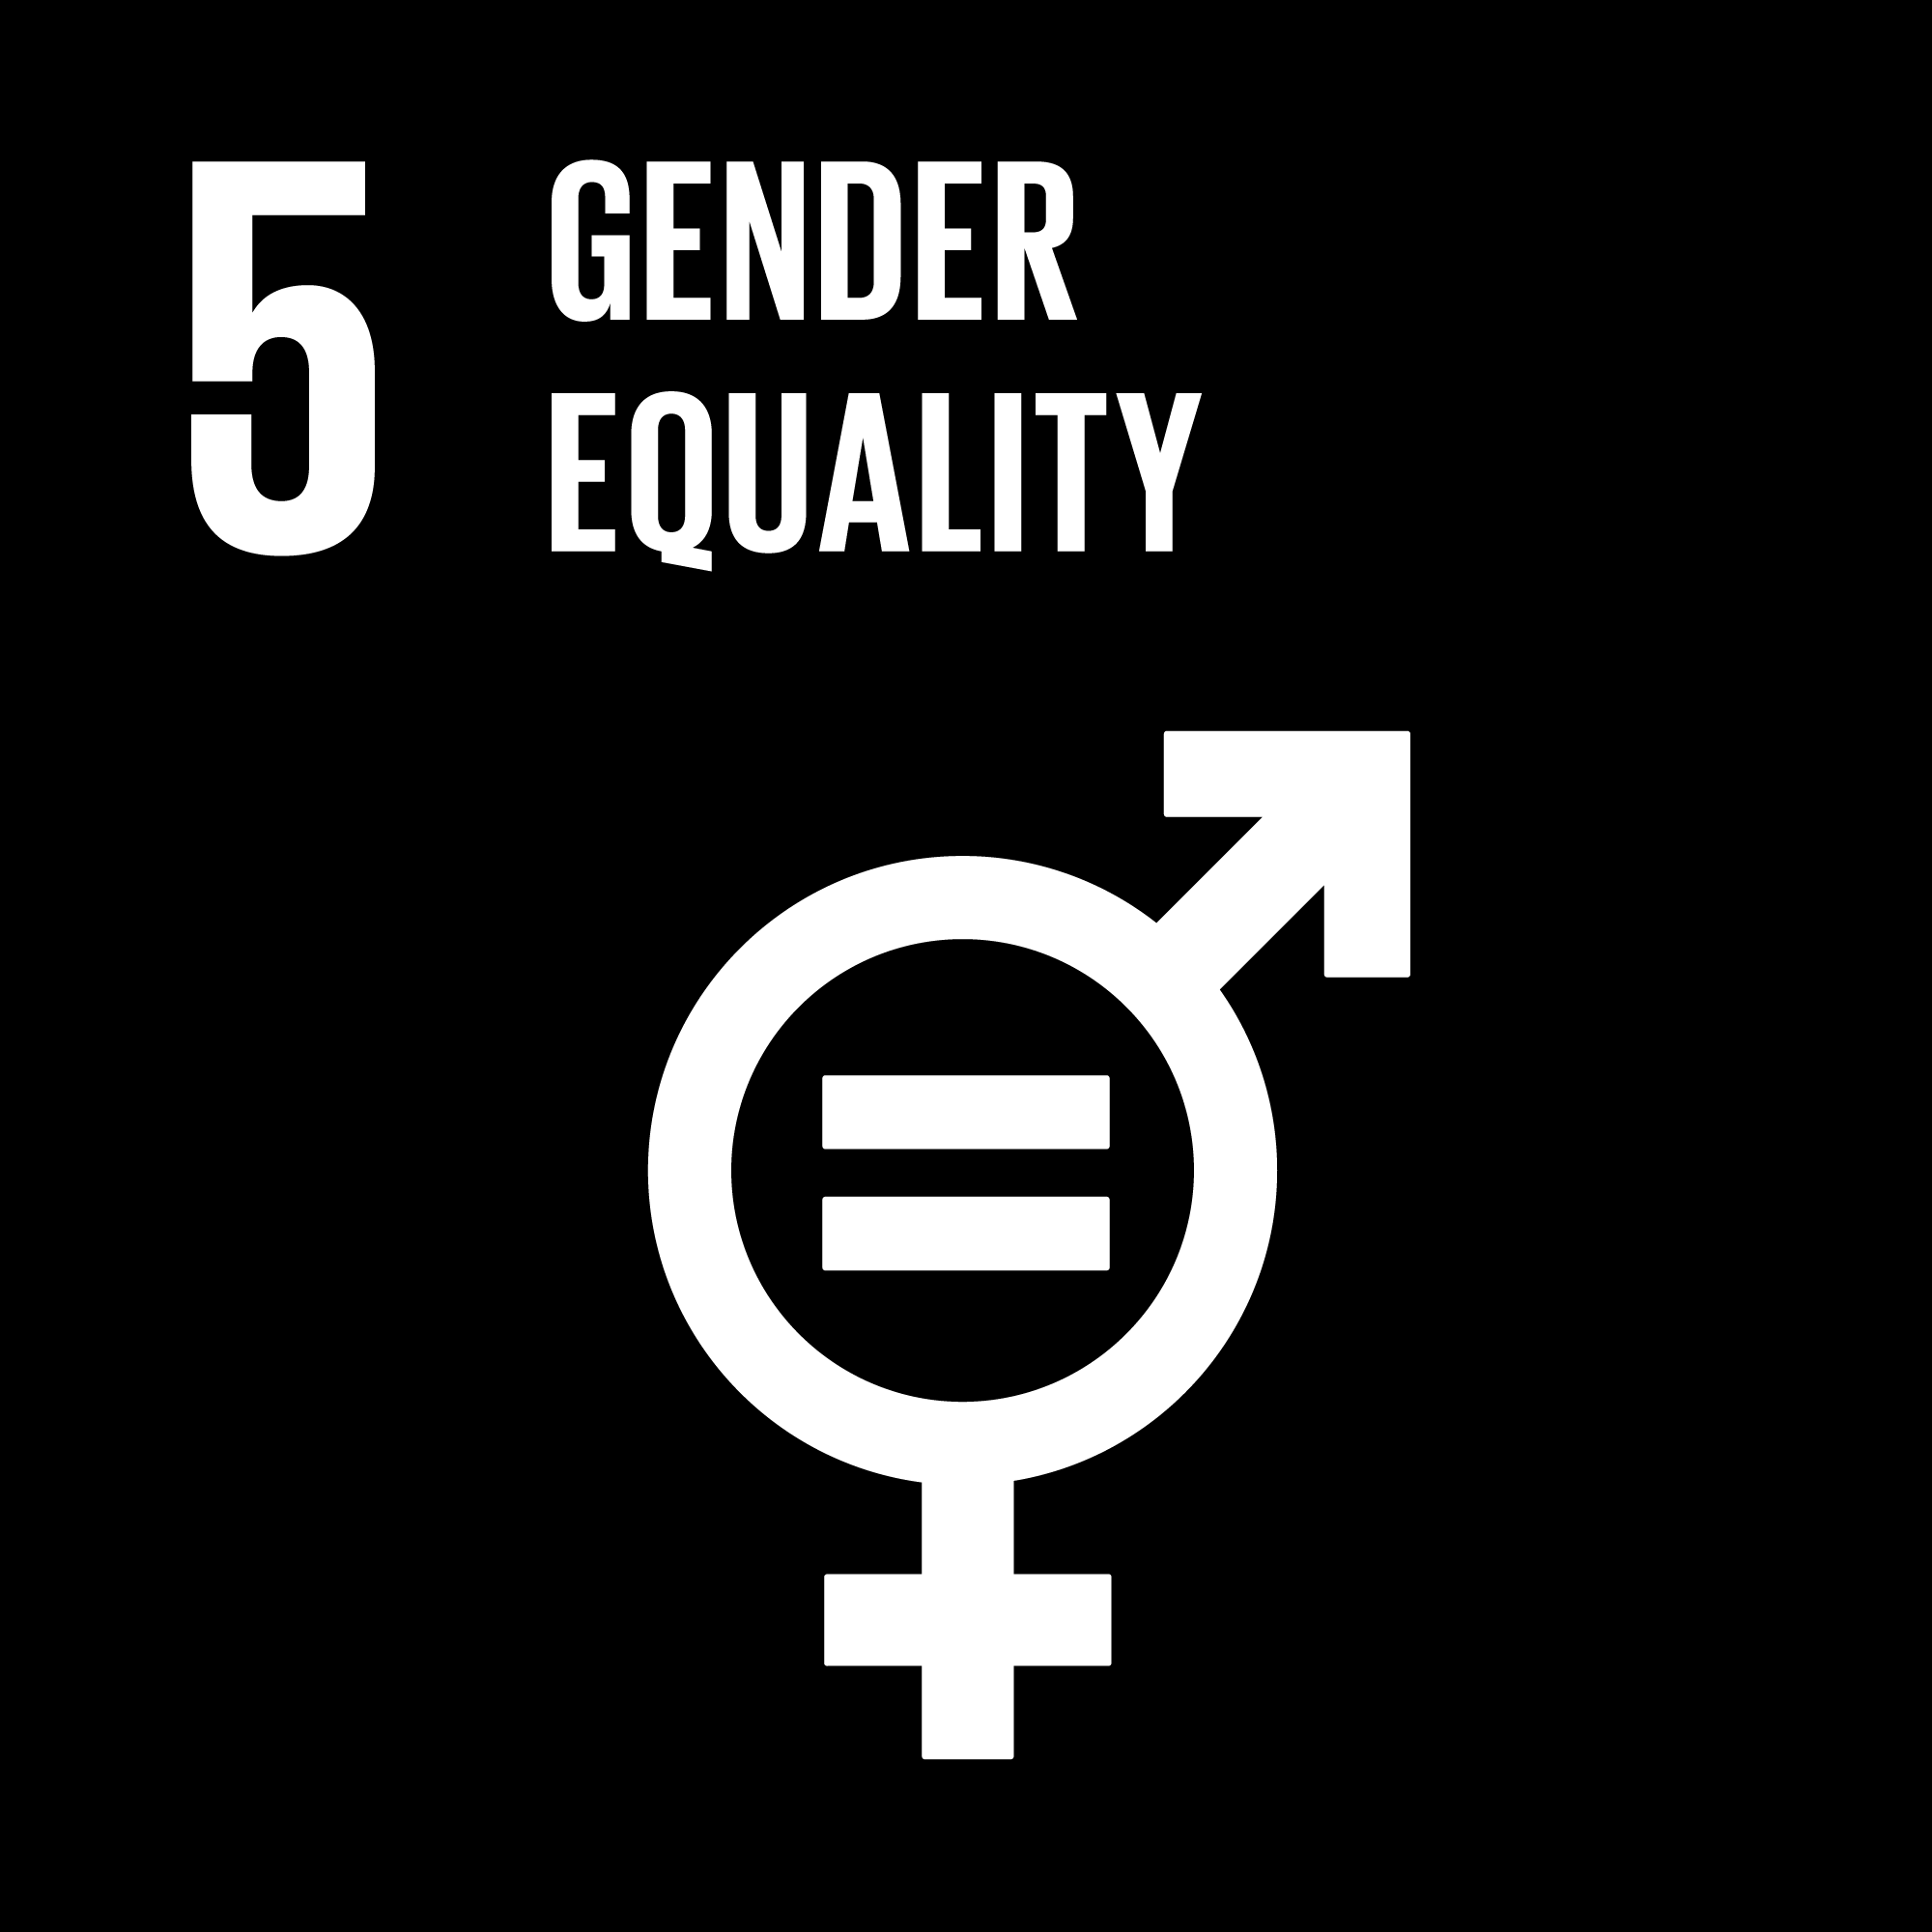 Sustainable Development Goals - 5 - Gender Equality